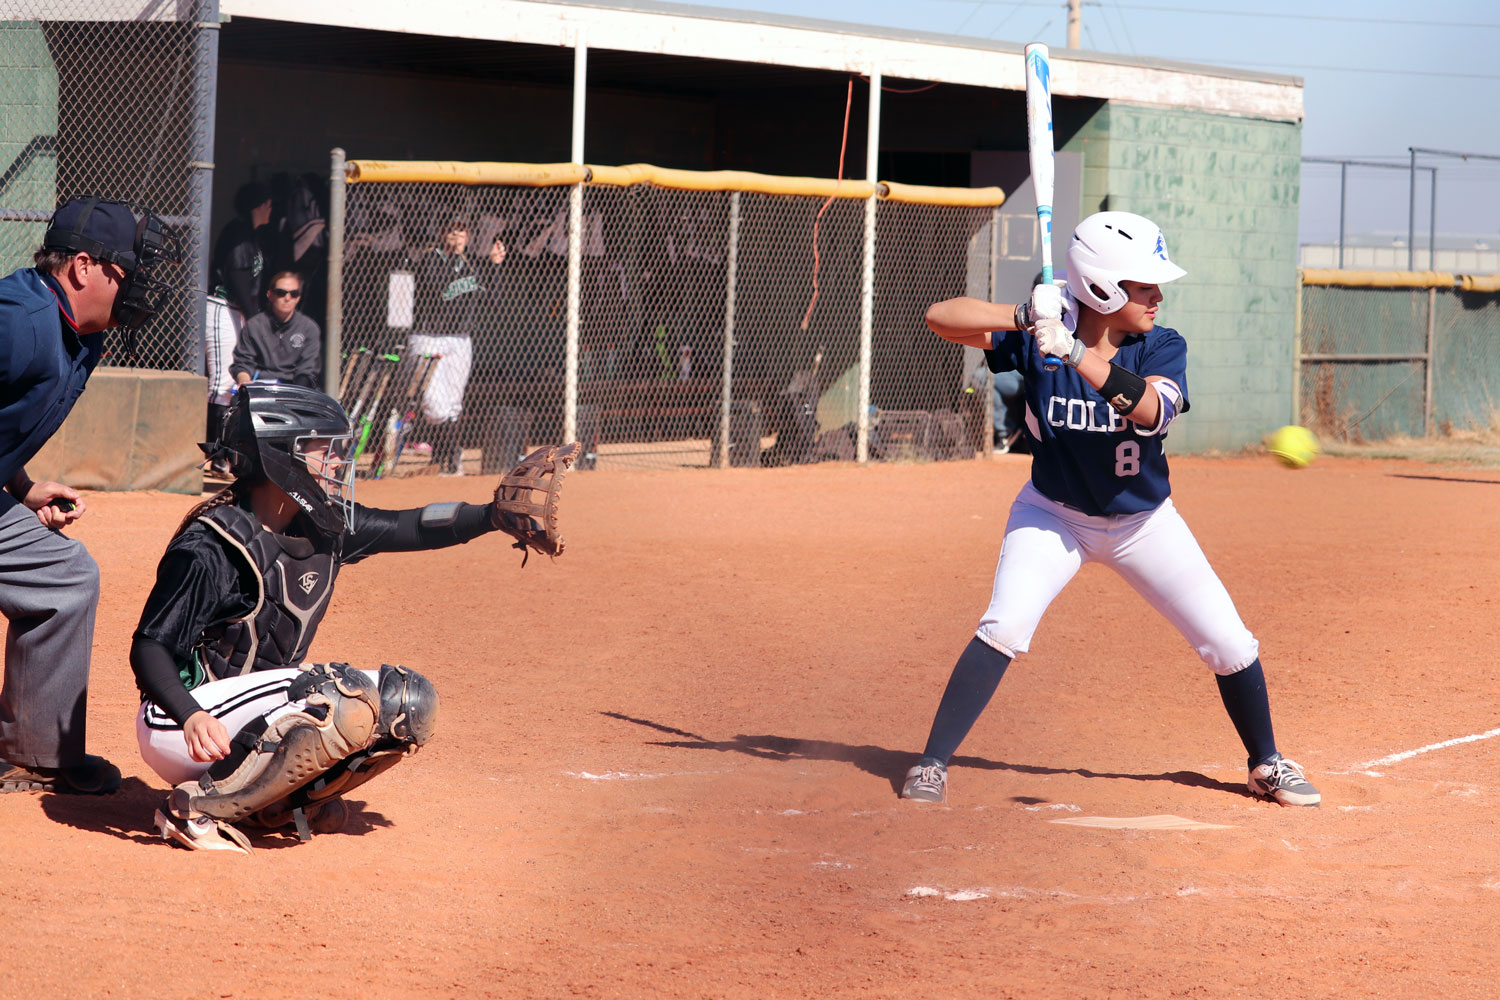 The Lady Saints softball team ended their season after falling in the Region VI Championship game to the Butler Grizzlies by a score of 18-0. (File Photo)